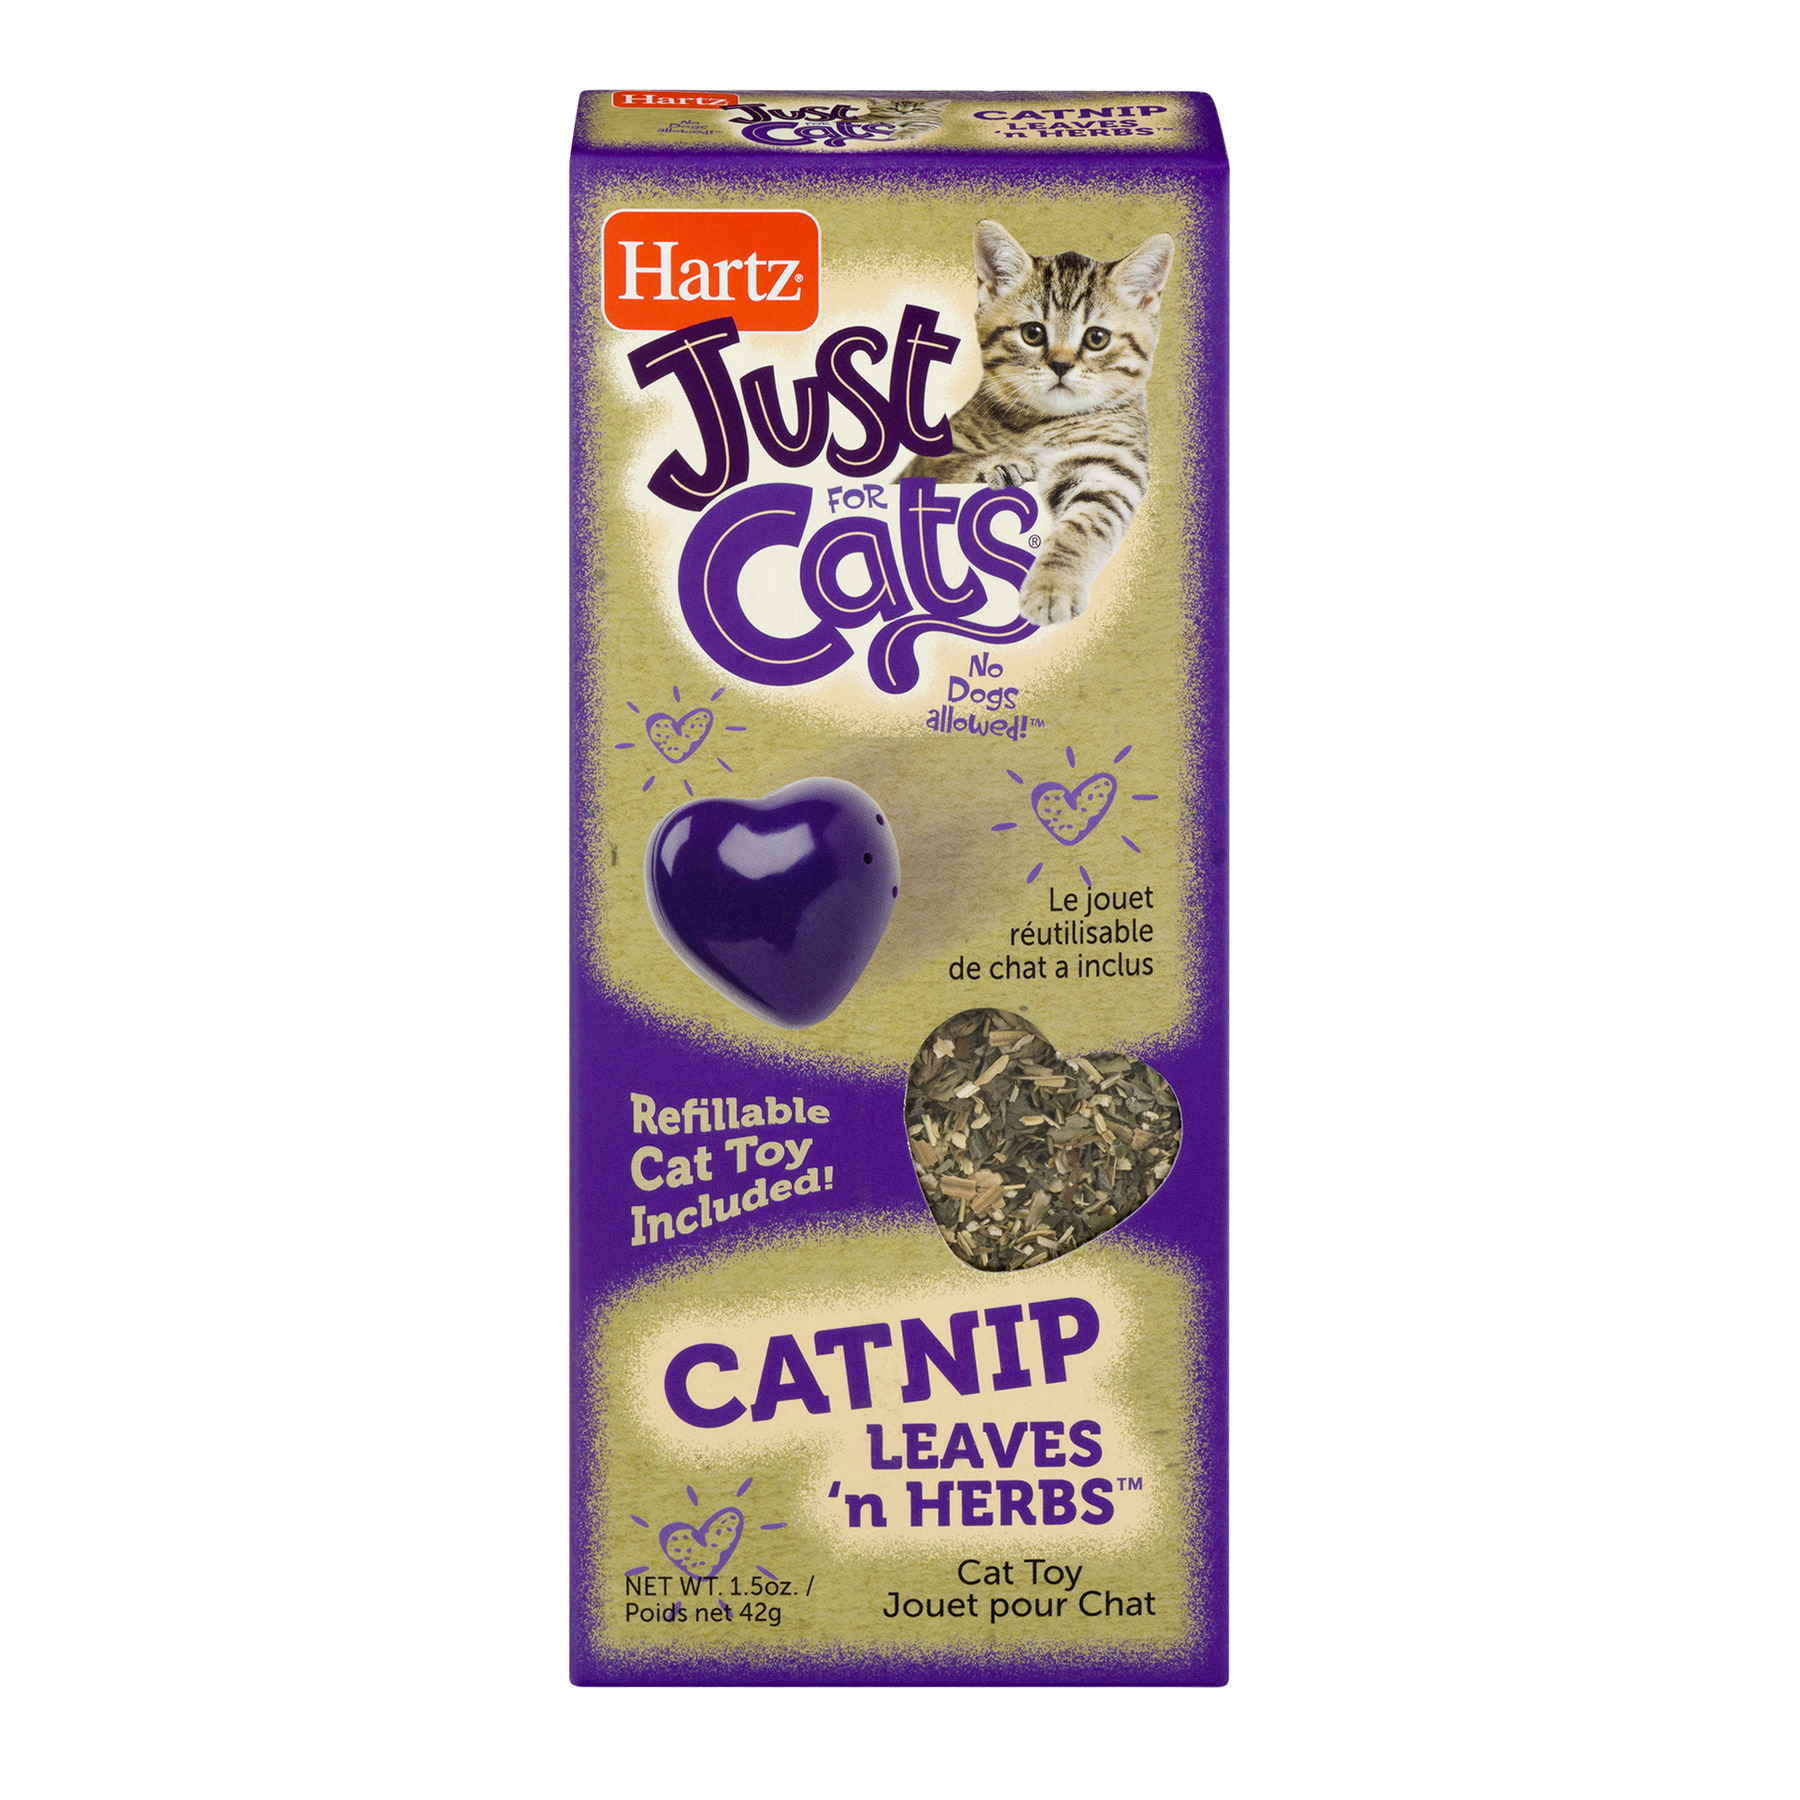 Hartz Just For Cats Catnip Leaves N' Herbs, with Refillable Cat Toy